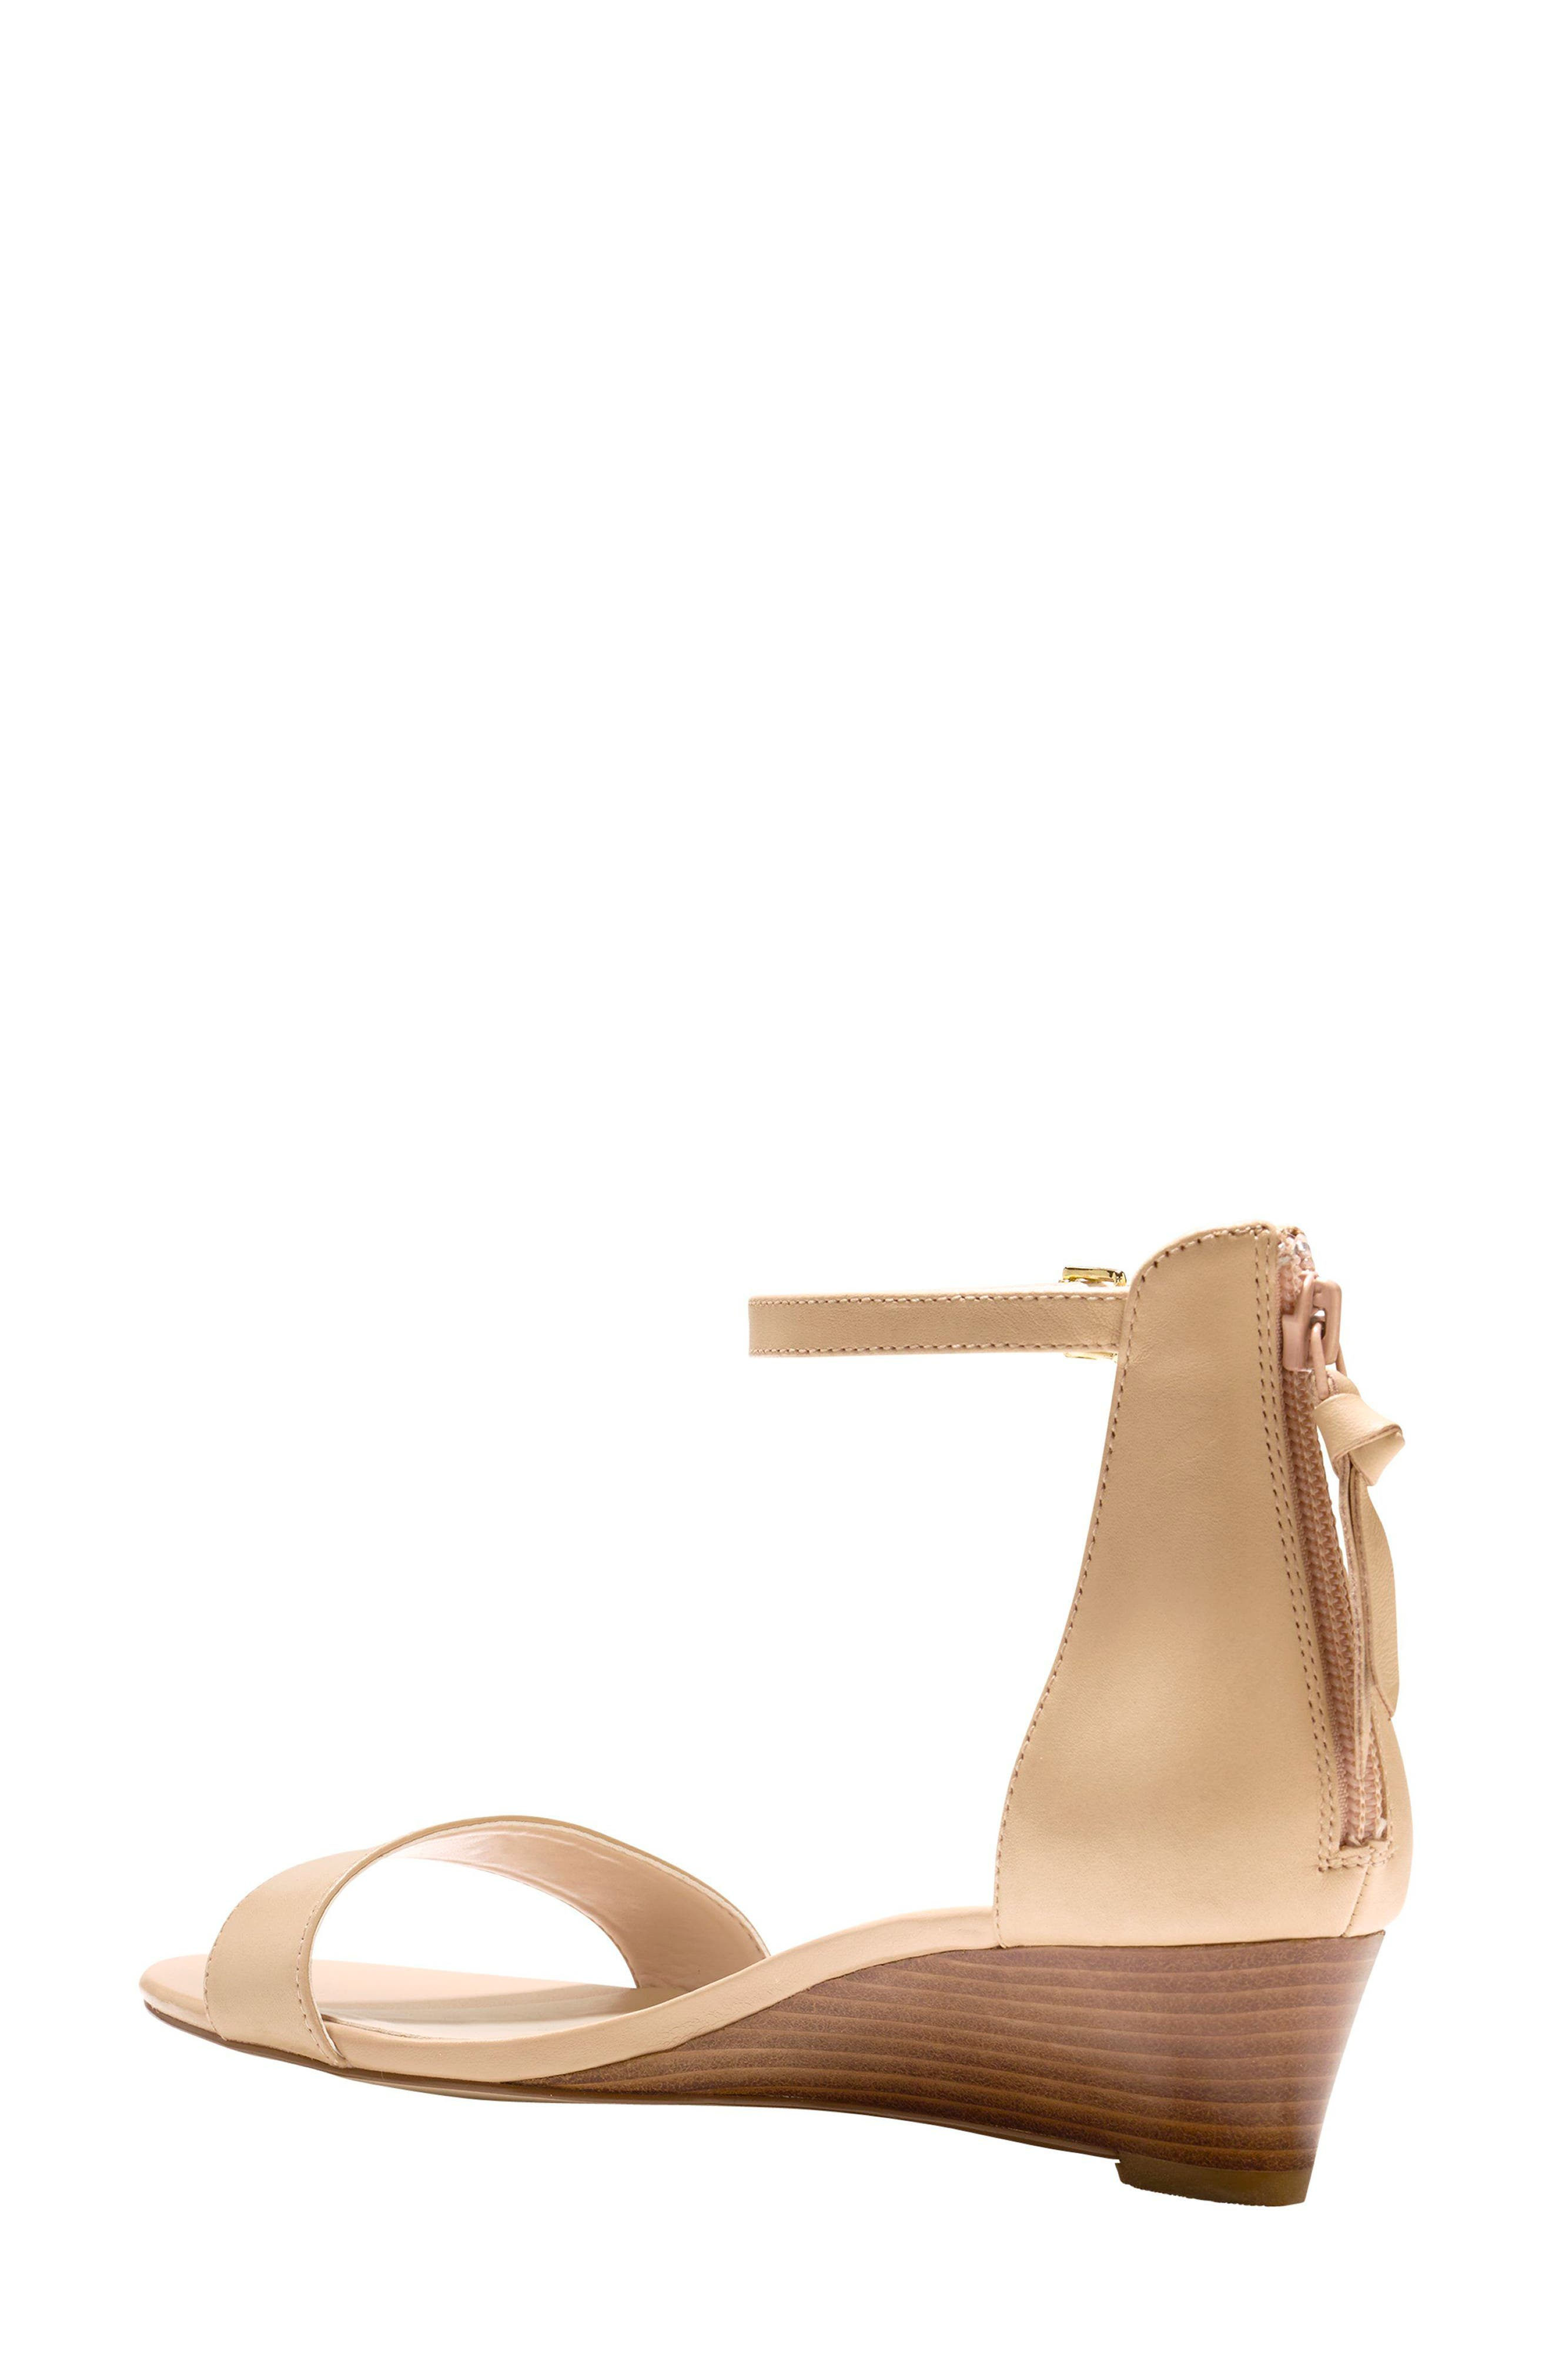 Adderly Sandal,                             Alternate thumbnail 2, color,                             NUDE LEATHER